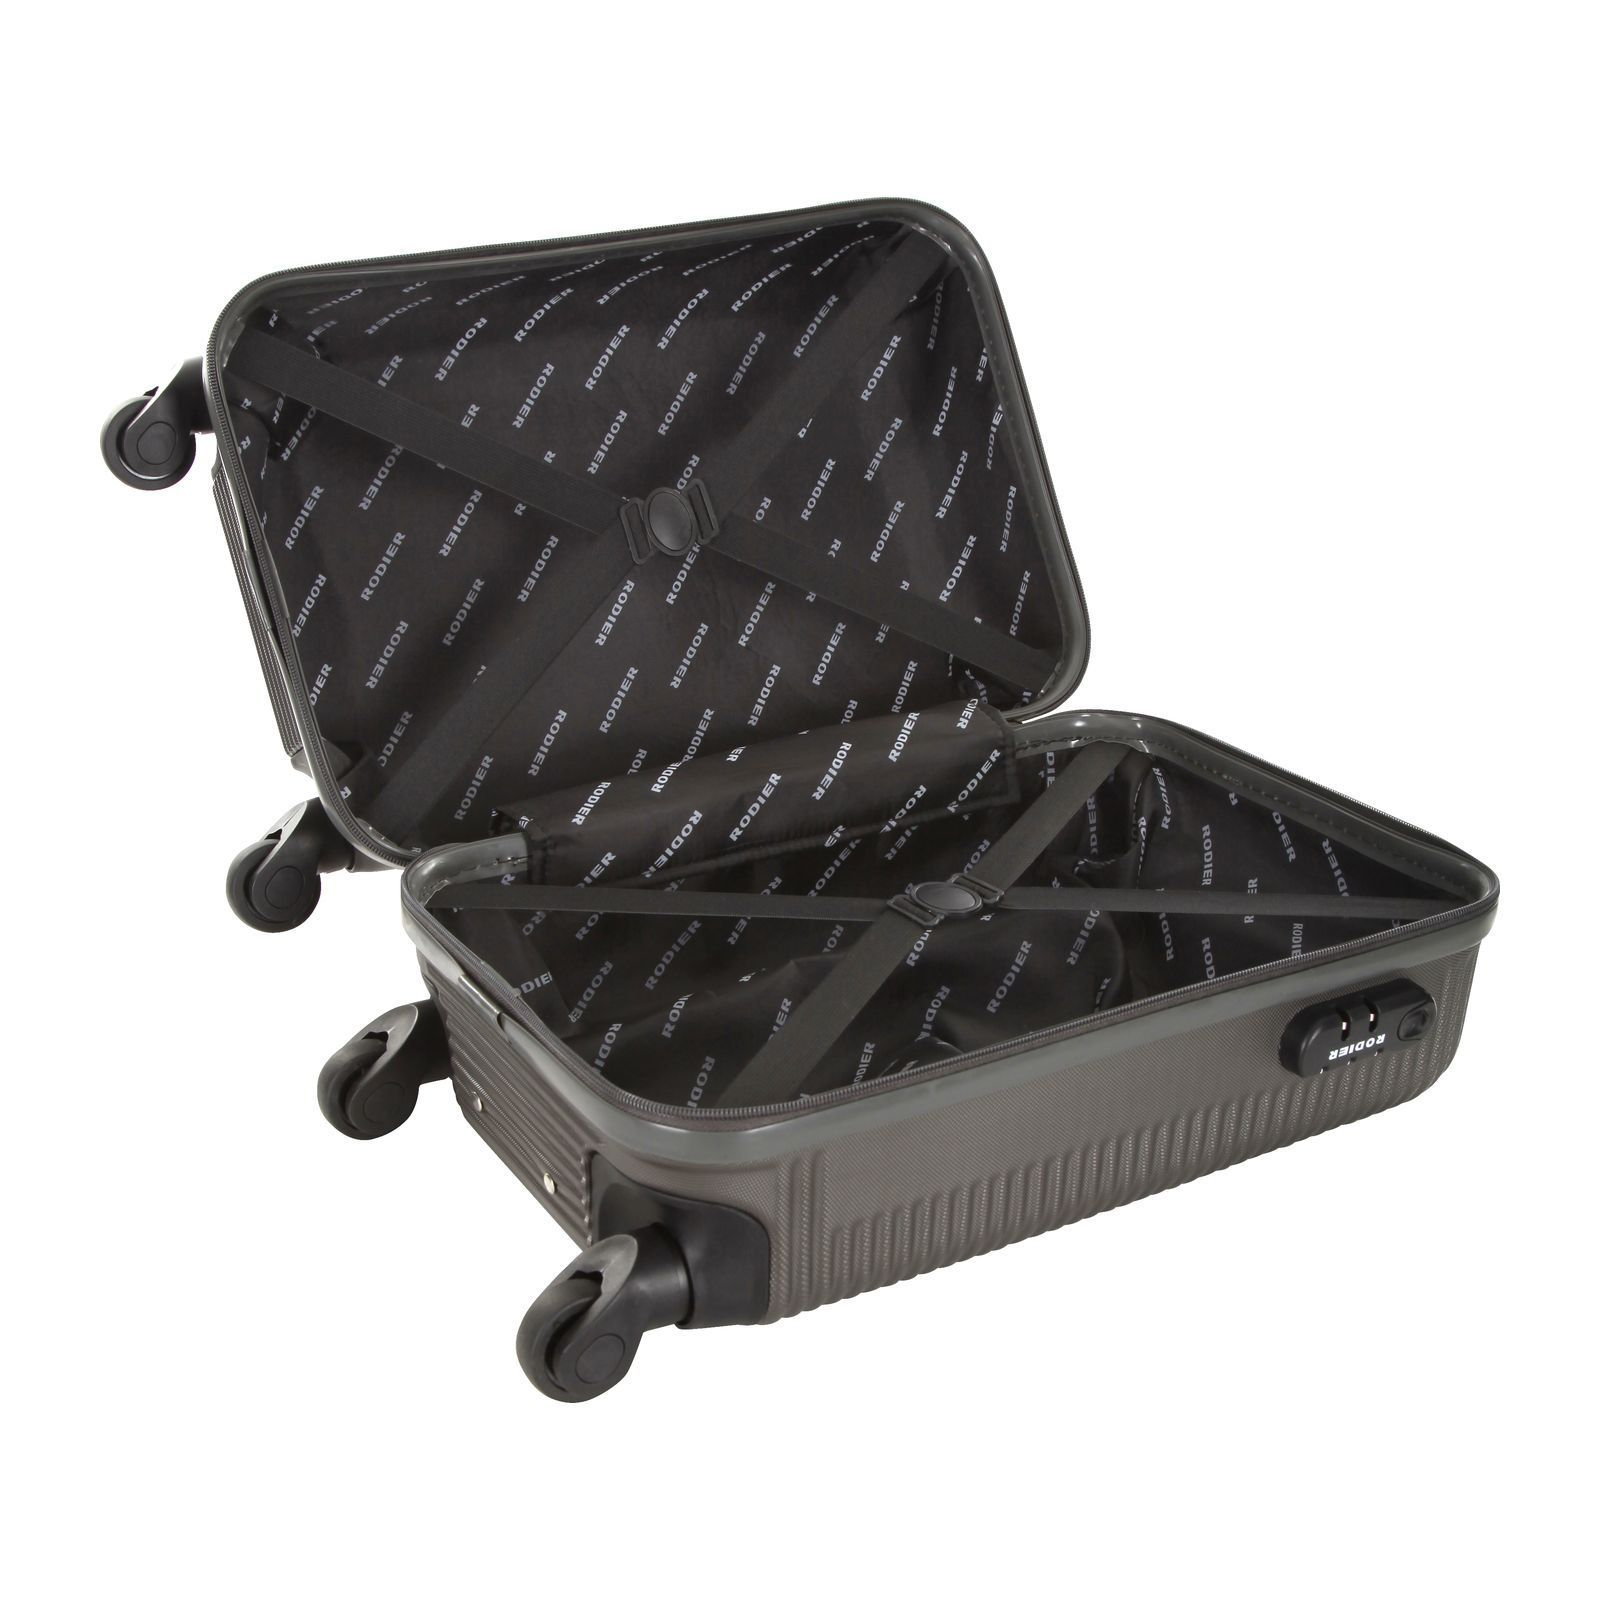 Rodier izalco valise cabine gris brandalley for Rodier interieur